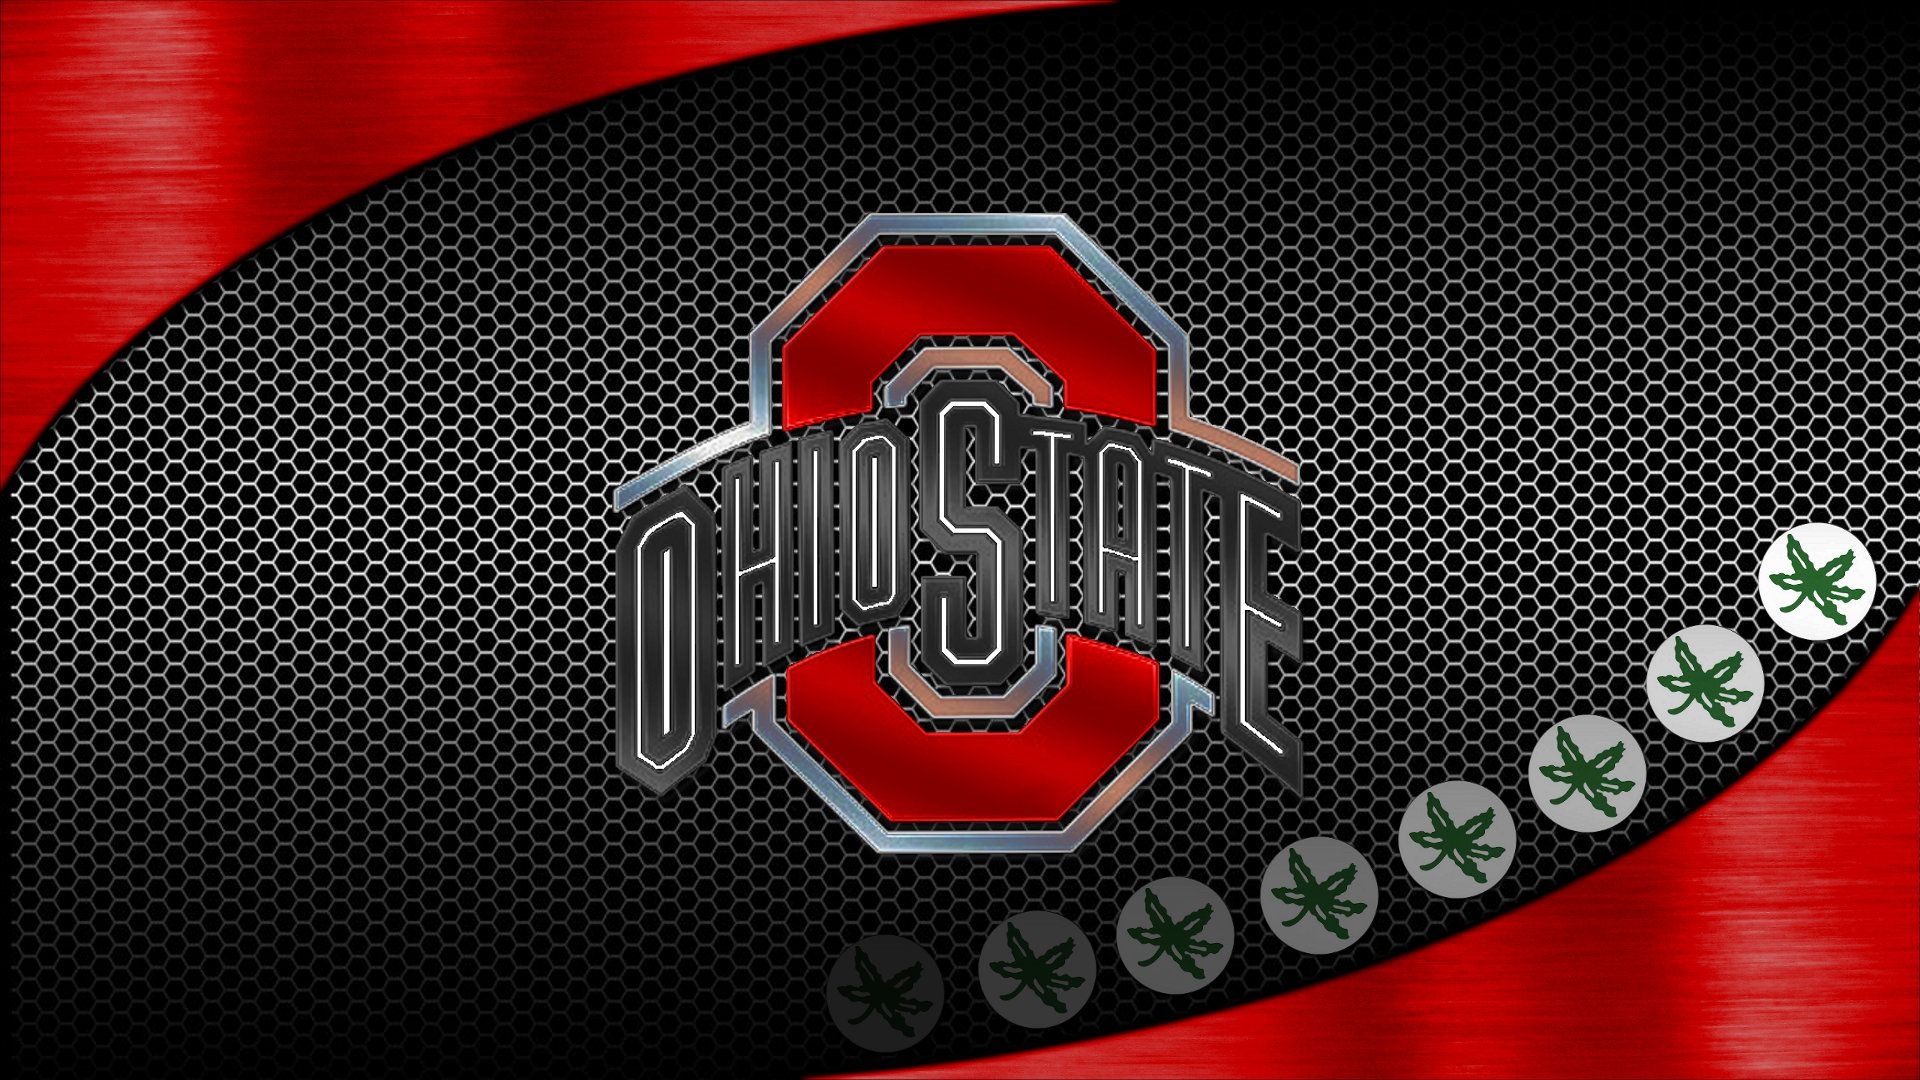 Osu Wallpaper 532 Ohio State Wallpaper Ohio State Buckeyes Ohio State